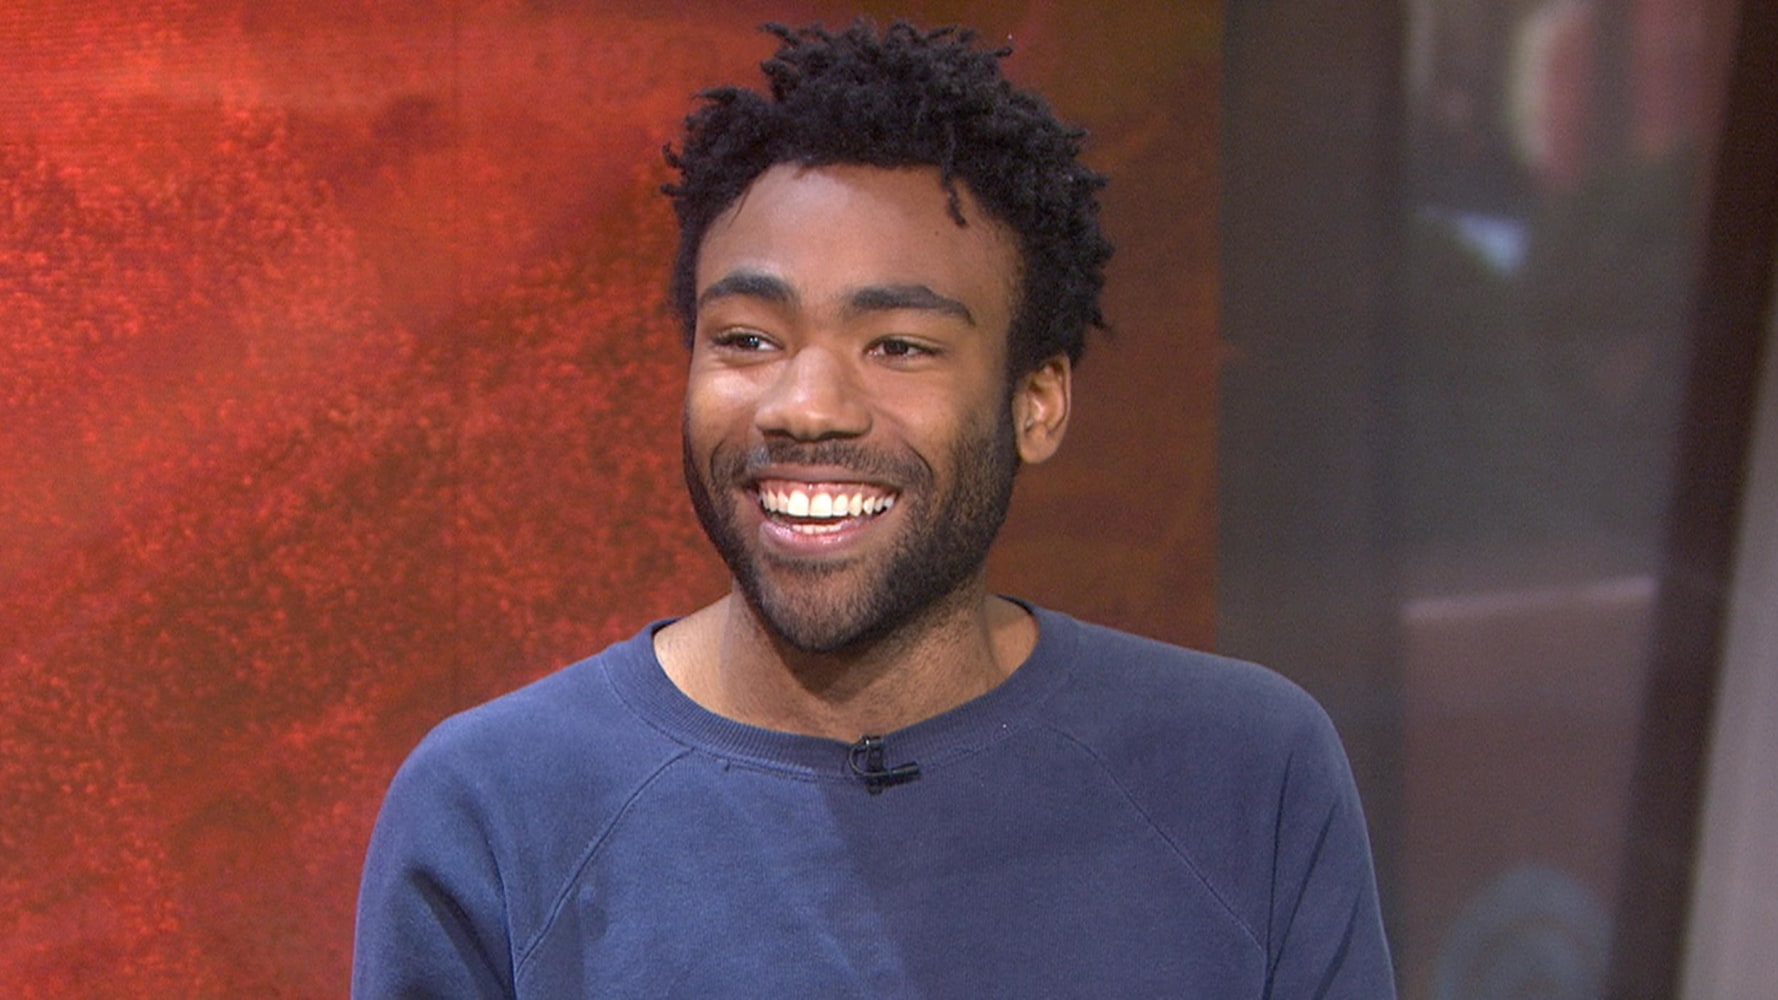 'Star Wars' Casts Donald Glover as Young Lando Calrissian ...